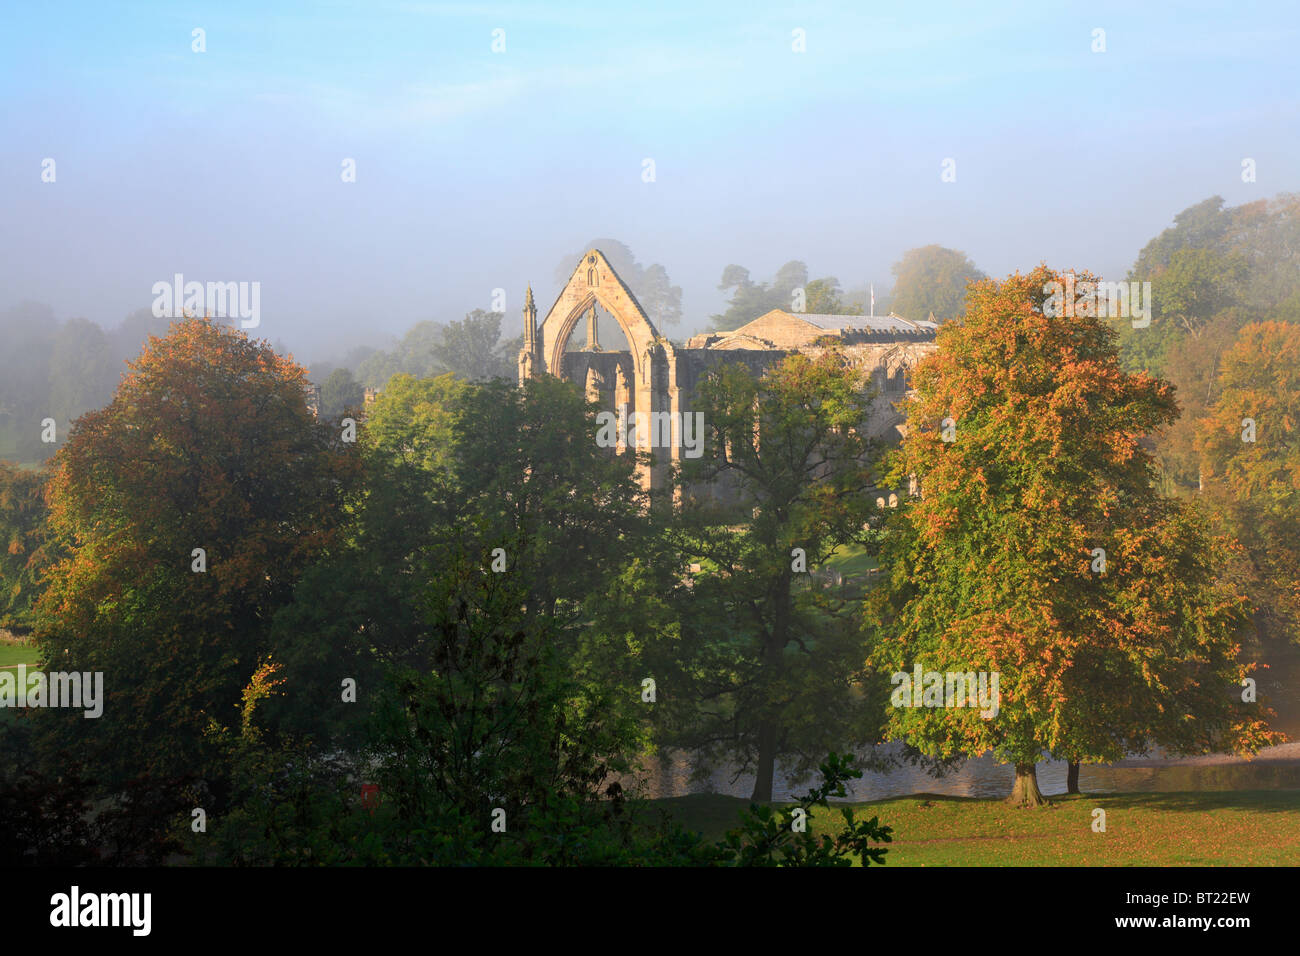 Bolton Priory im Herbst Nebel, Bolton Abbey, Yorkshire Dales National Park, North Yorkshire, England, UK. Stockfoto